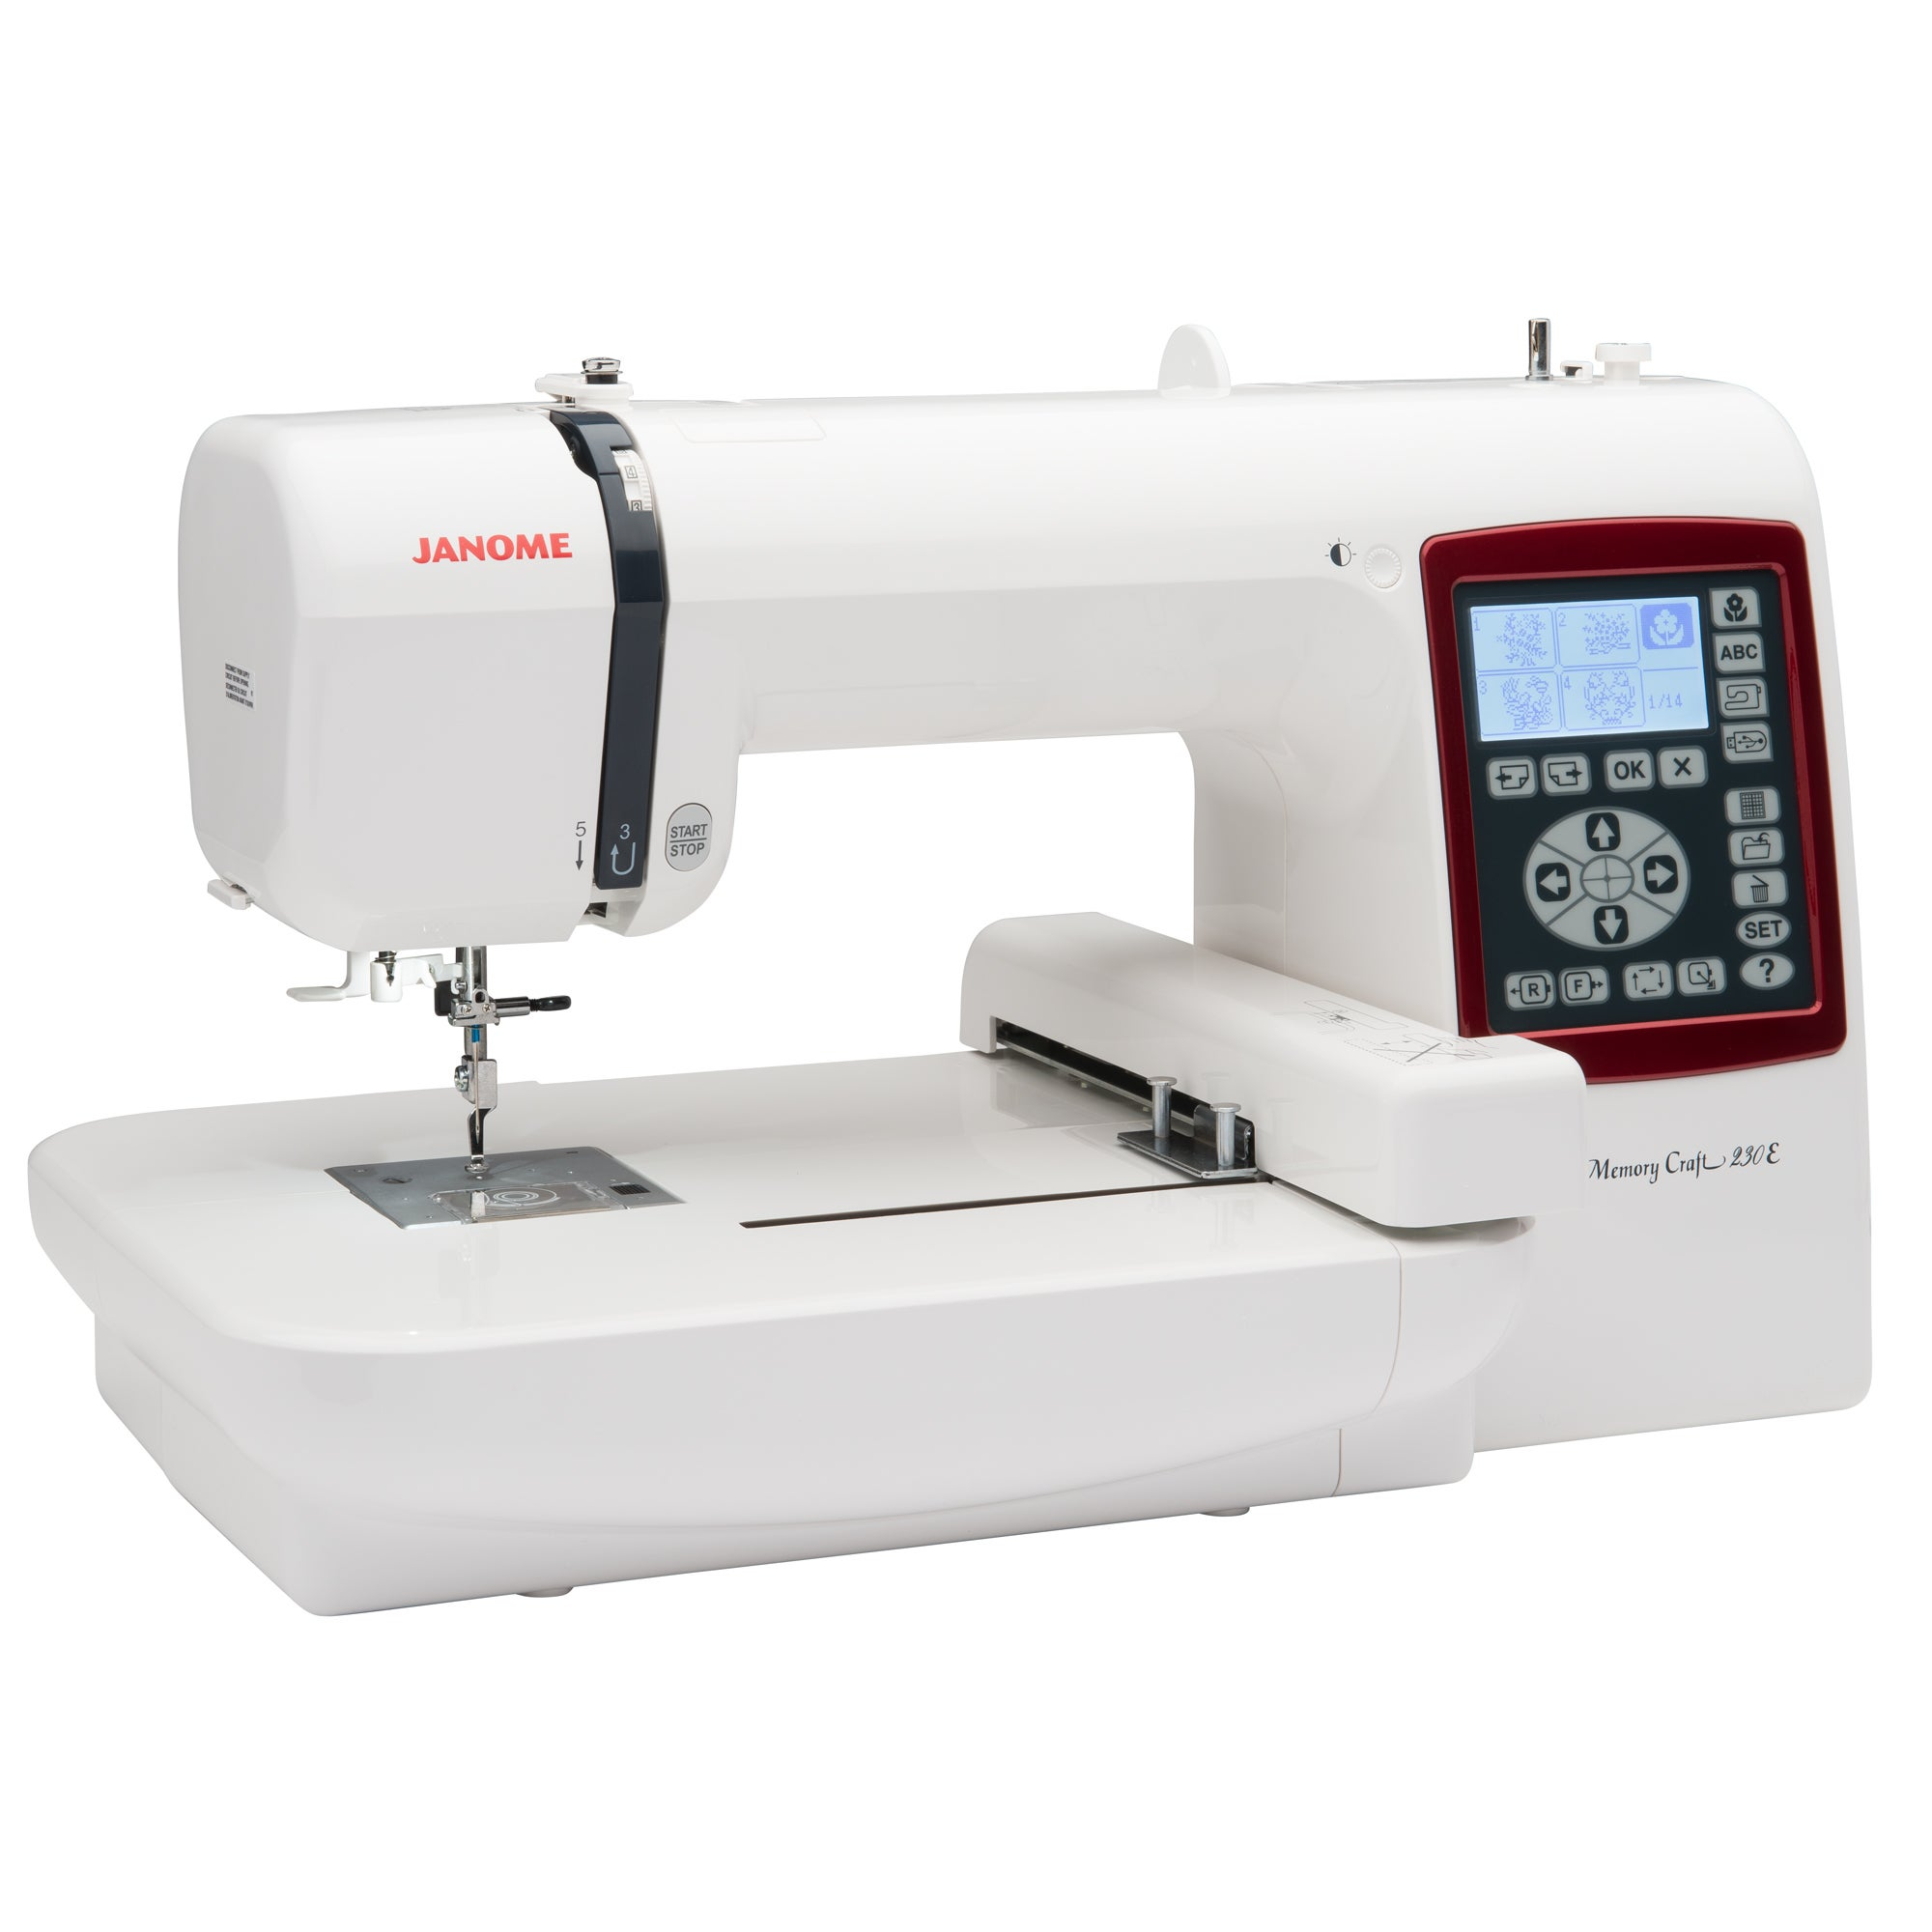 sewing machine atelier quilting janome machines quilt embroidery computerised